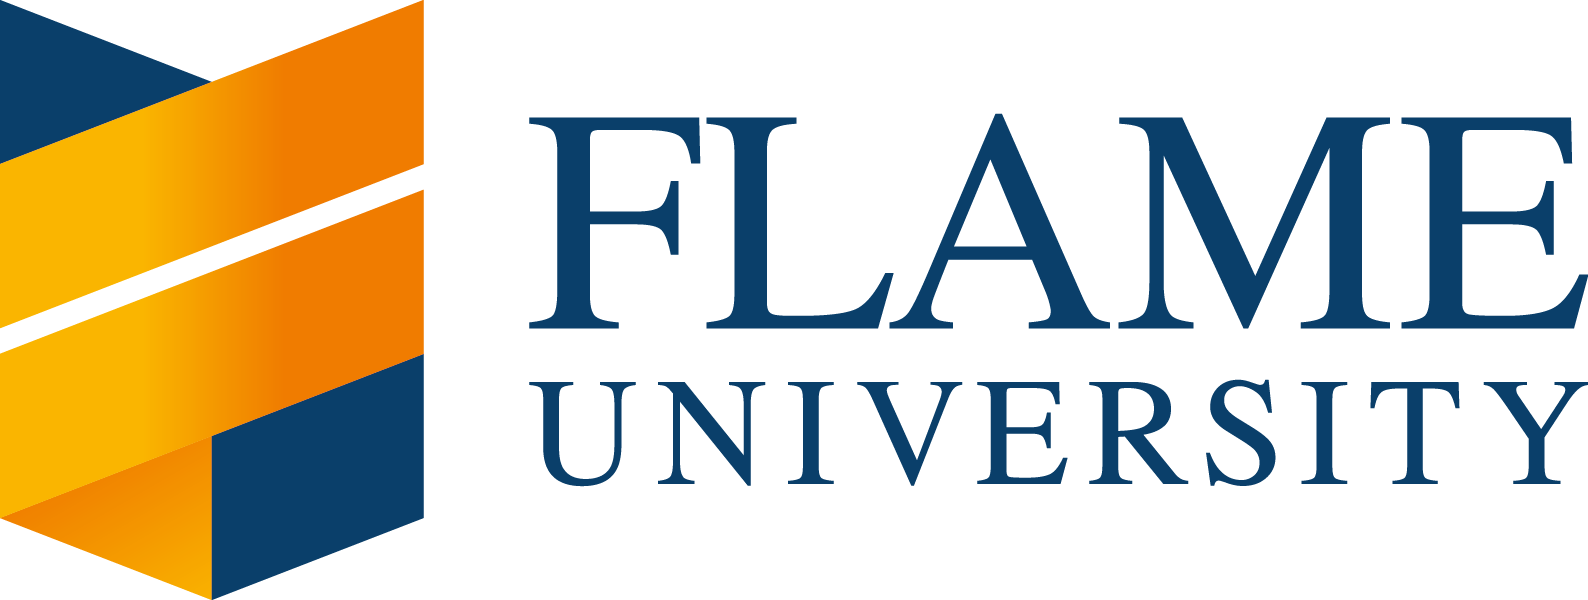 FLAME University   The Pioneers of Liberal Education in India